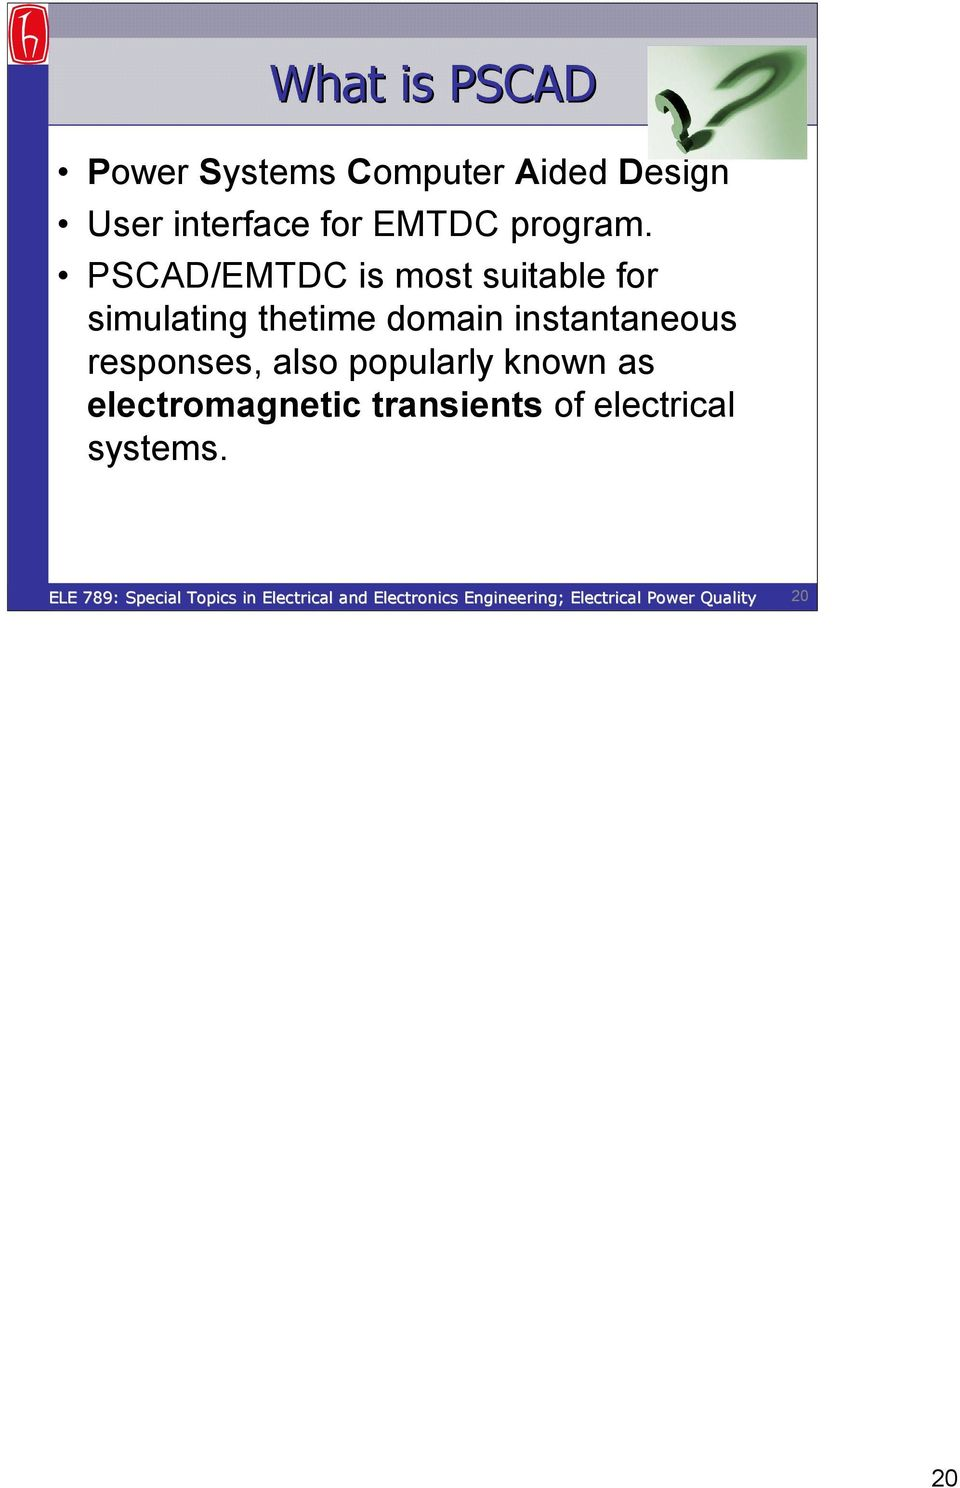 PSCAD/EMTDC is most suitable for simulating thetime domain